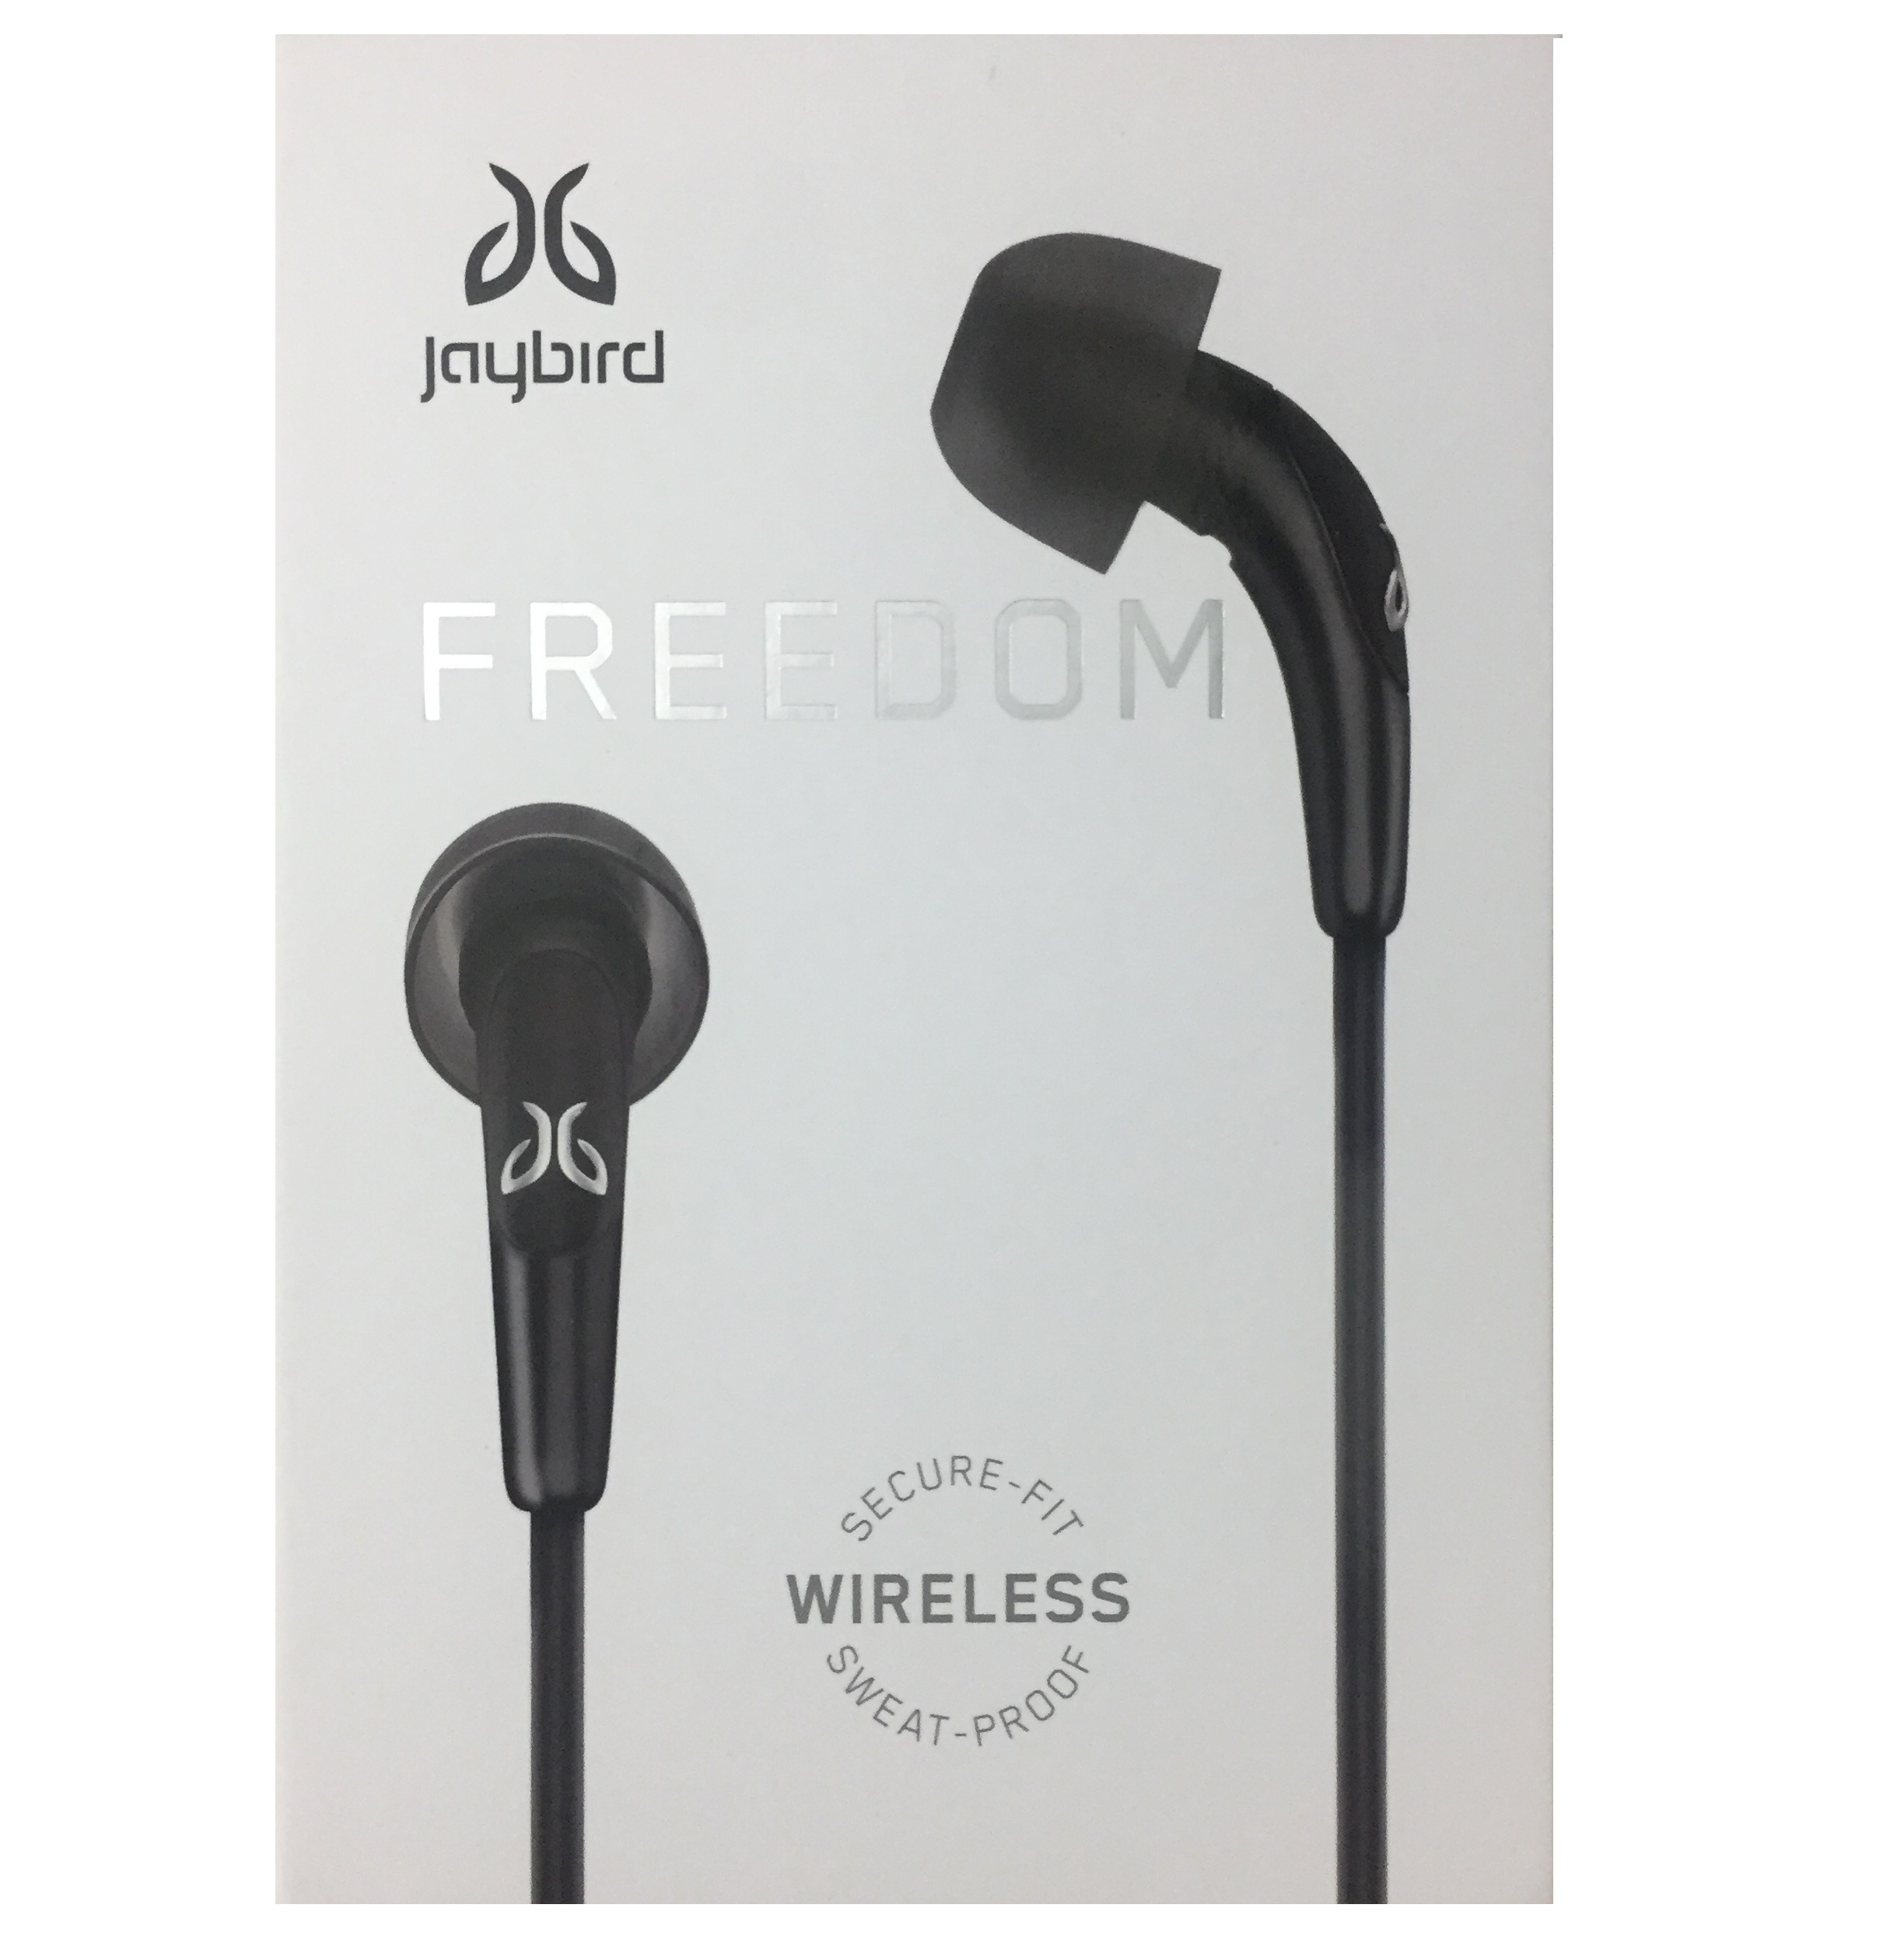 Jaybird-Freedom-F5-Premium-In-Ear-Wireless-Earbuds-Headphones-Carbon-Black-VS